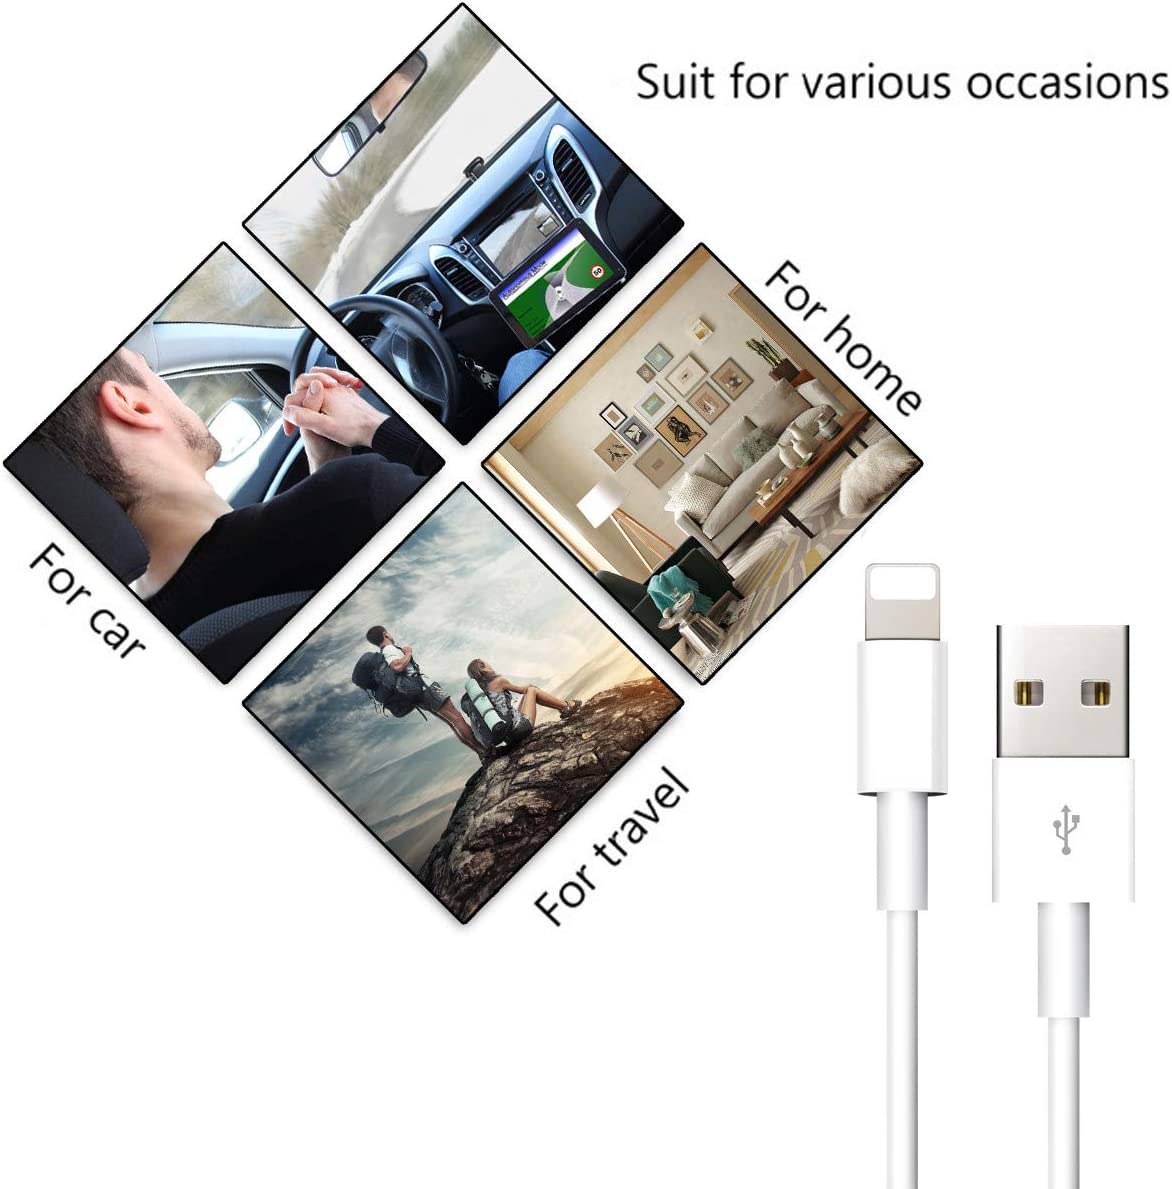 Charging Cables 2M LOVENIMEN USB 6FT Charger Cable Wires Fast Charging Syncing Data Lines High Speed Durable Cords Compatible with Phone 11 Pro XR XS MAX X 8 8plus 7 Plus 6s 6 5-10 Pack